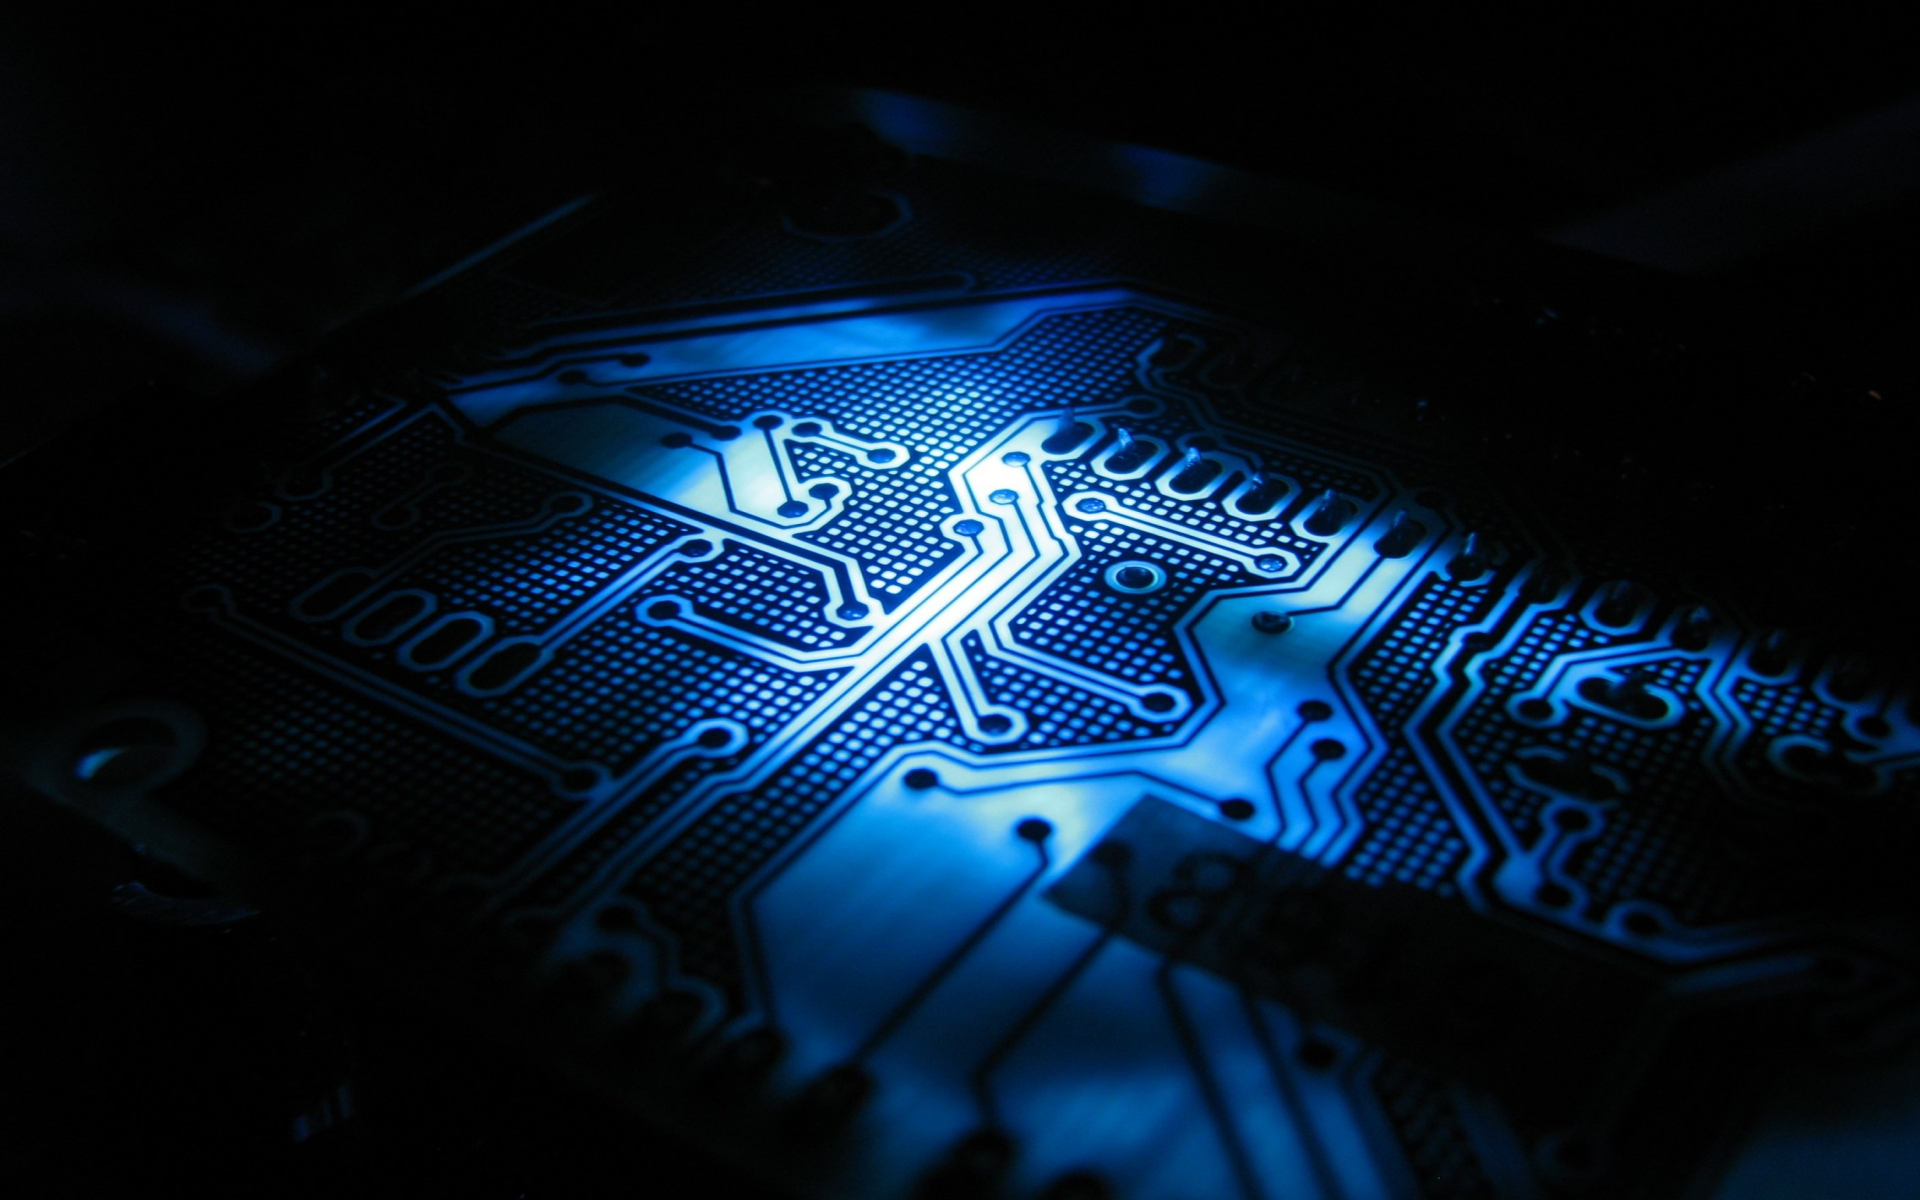 circuit_board_Electronic_Devices_tech_blue_abstract_line_metal_detail_1920x1200